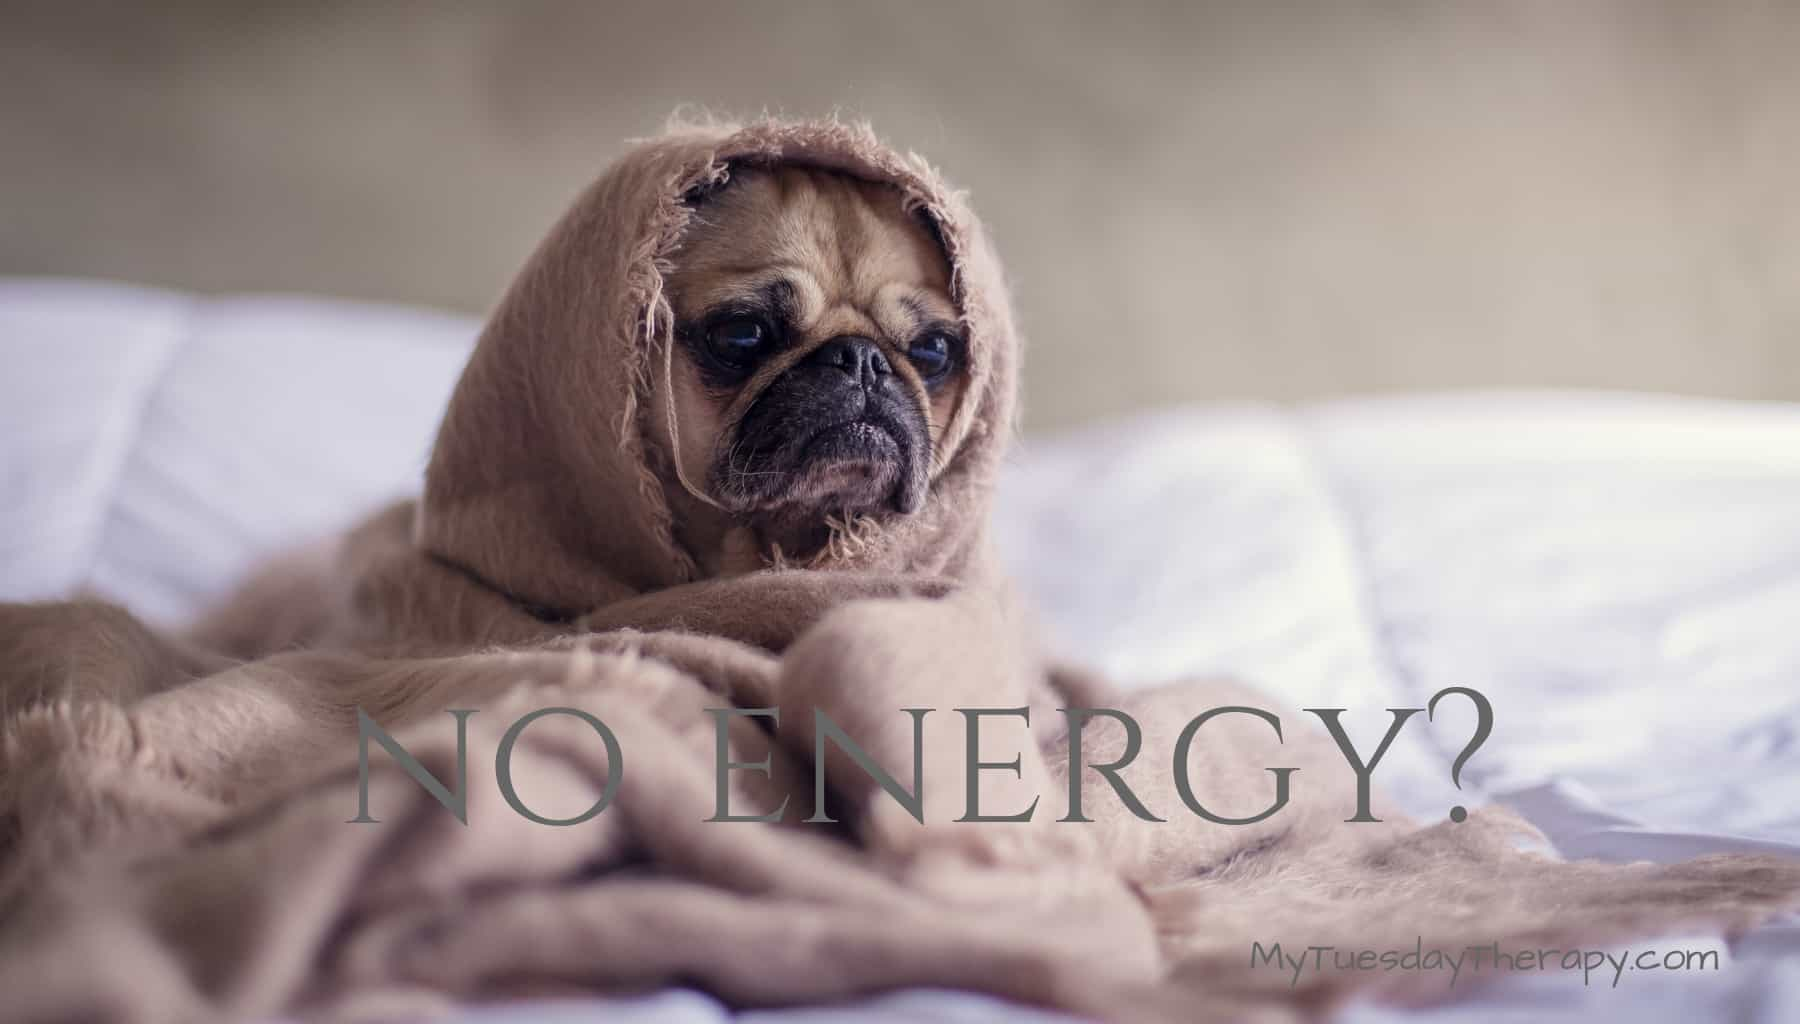 This Dog Wants to Stay In Bed. Do you Lack Energy too?